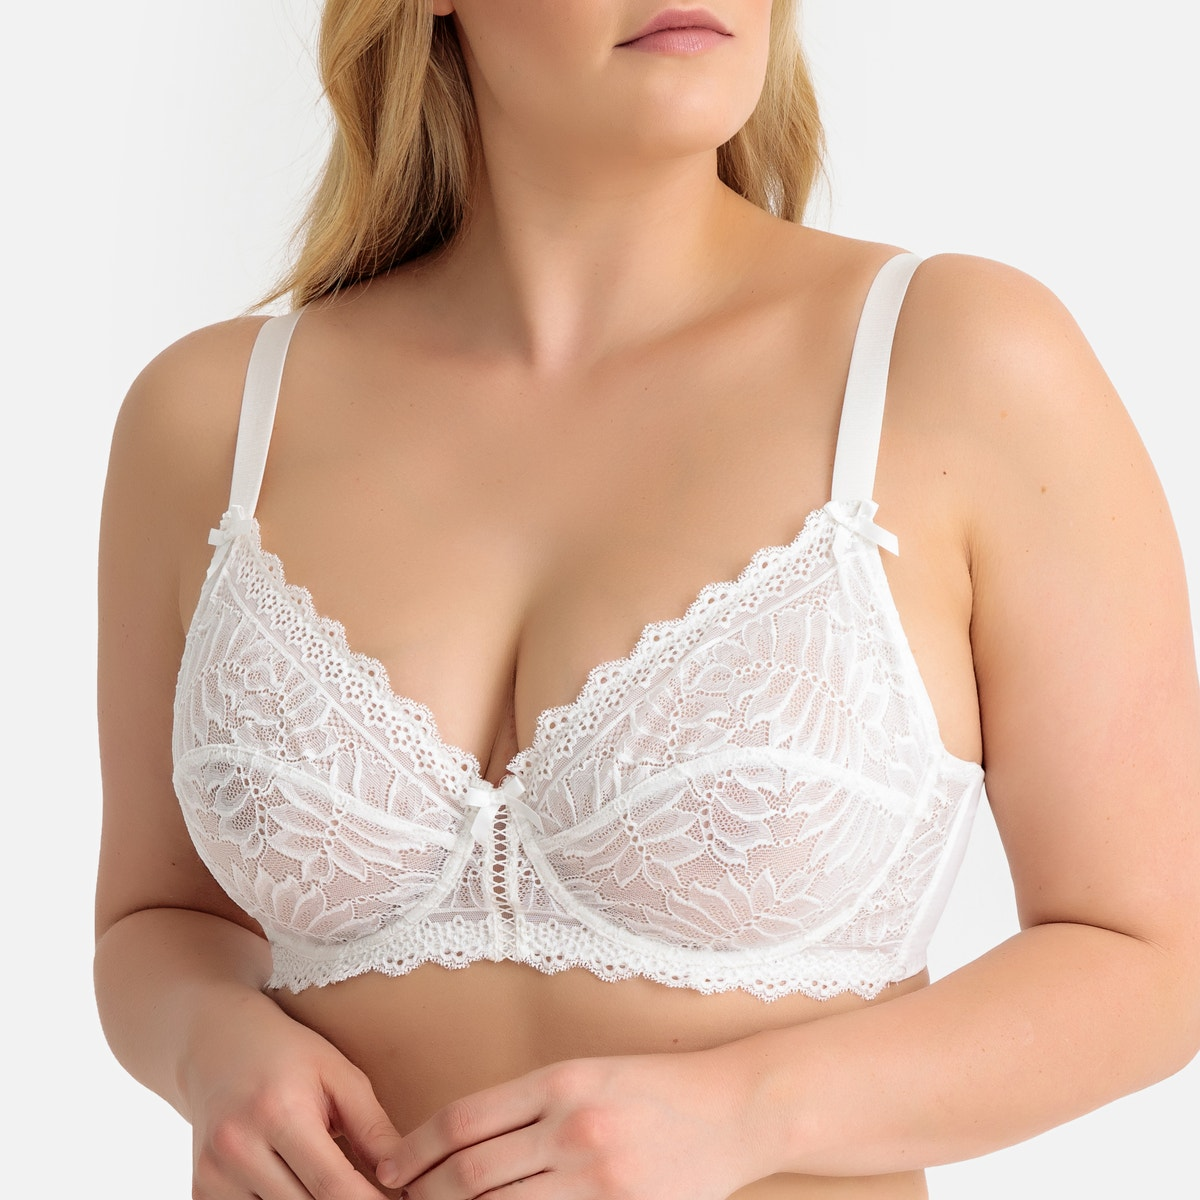 La Redoute Collections Plus - Σουτιέν Με Δαντέλα 350129890 - 5408